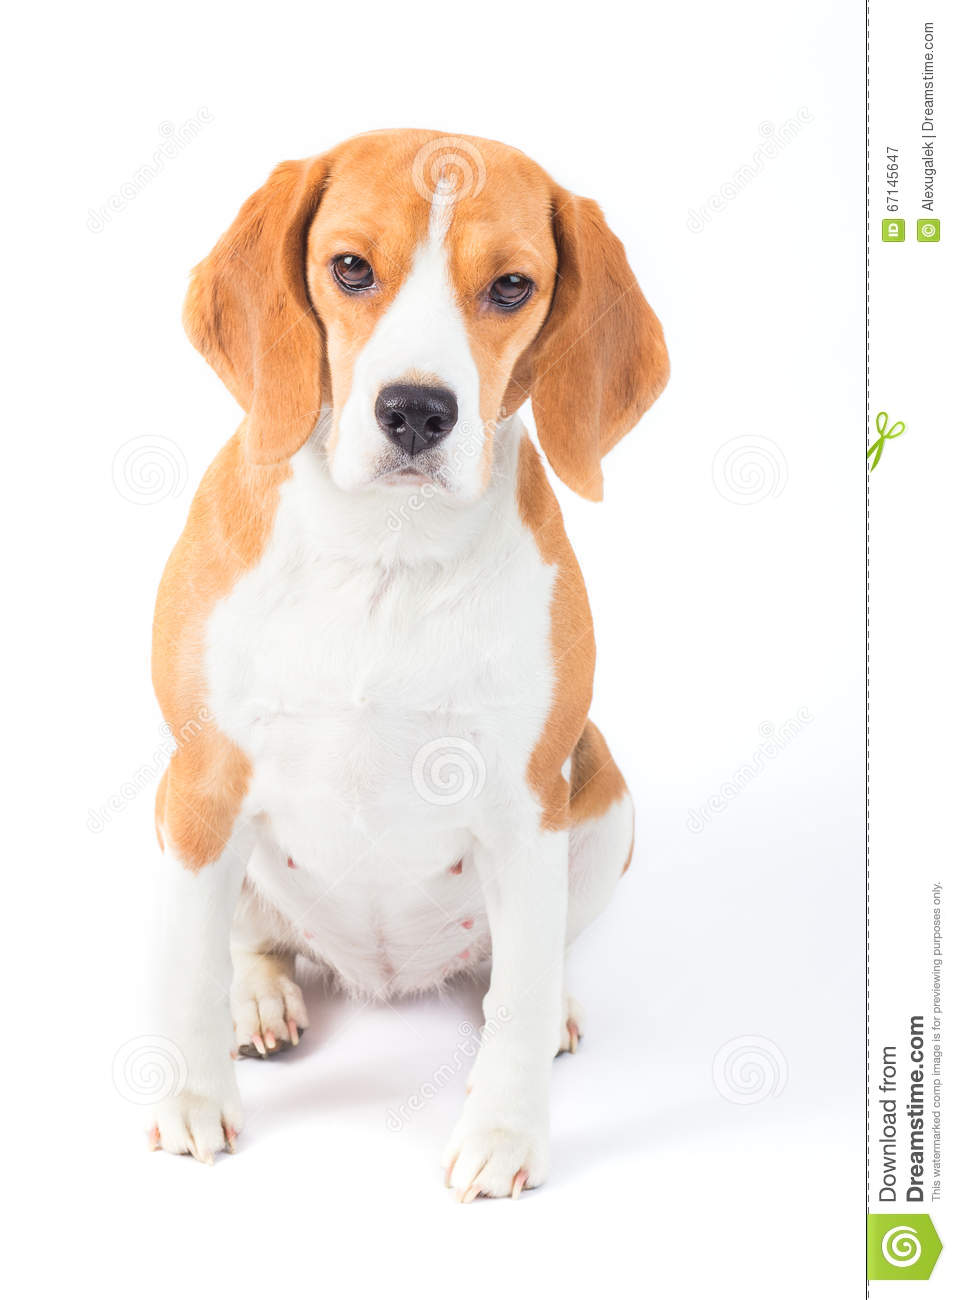 Sad beagle dog portrait